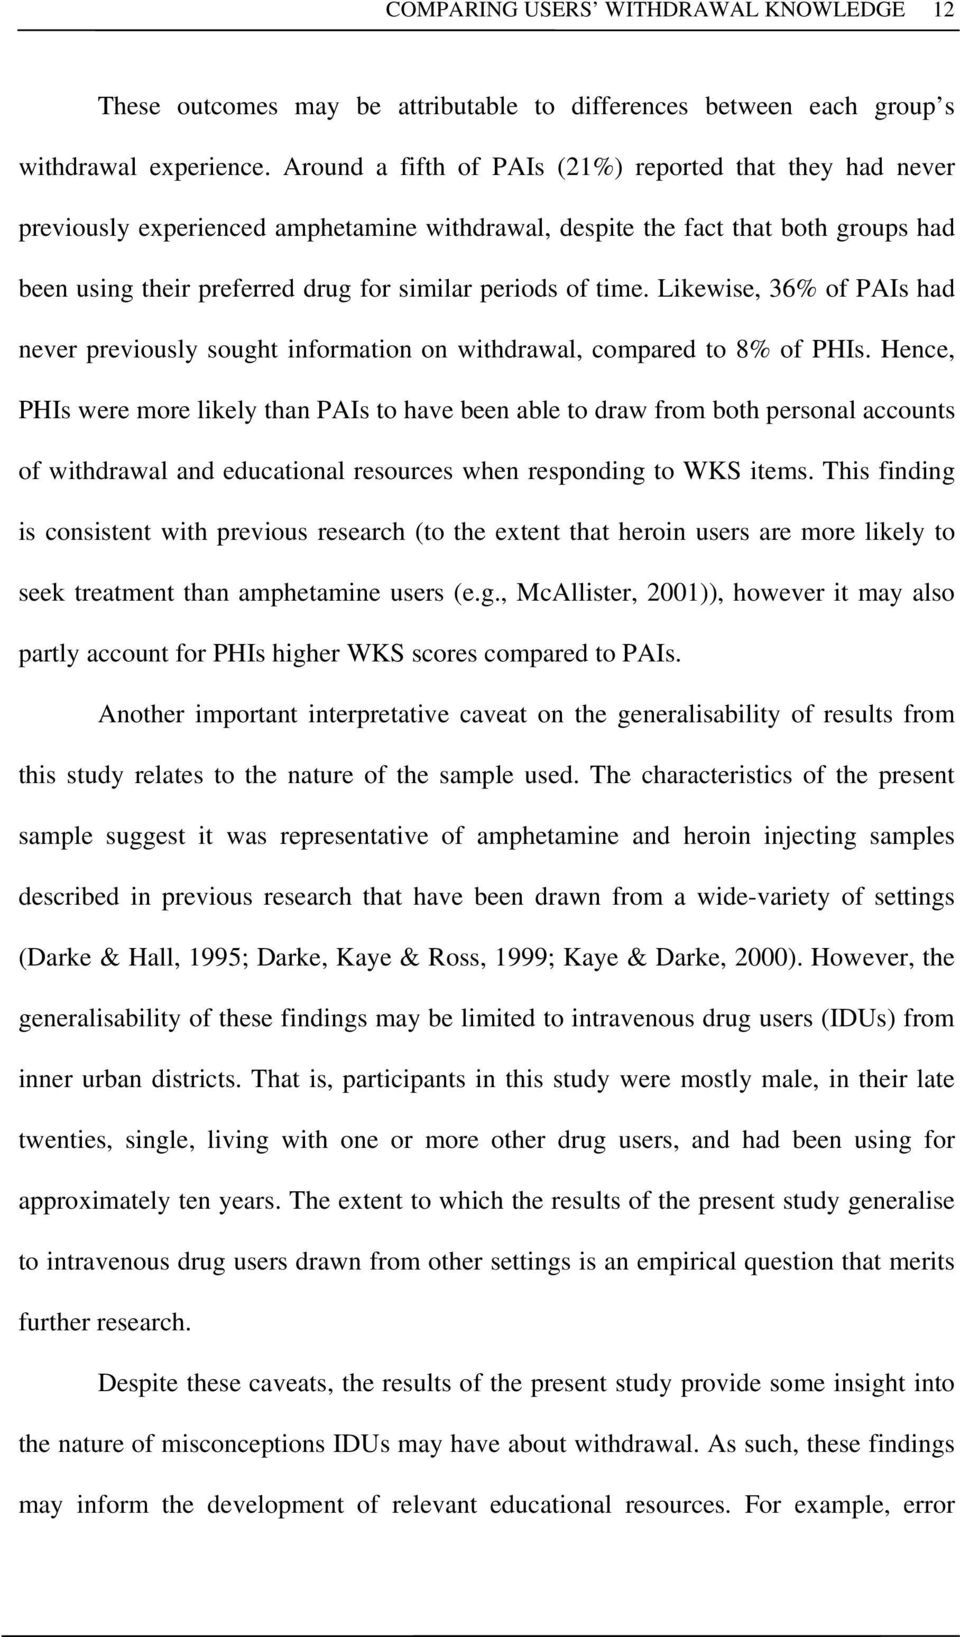 time. Likewise, 36% of PAIs had never previously sought information on withdrawal, compared to 8% of PHIs.